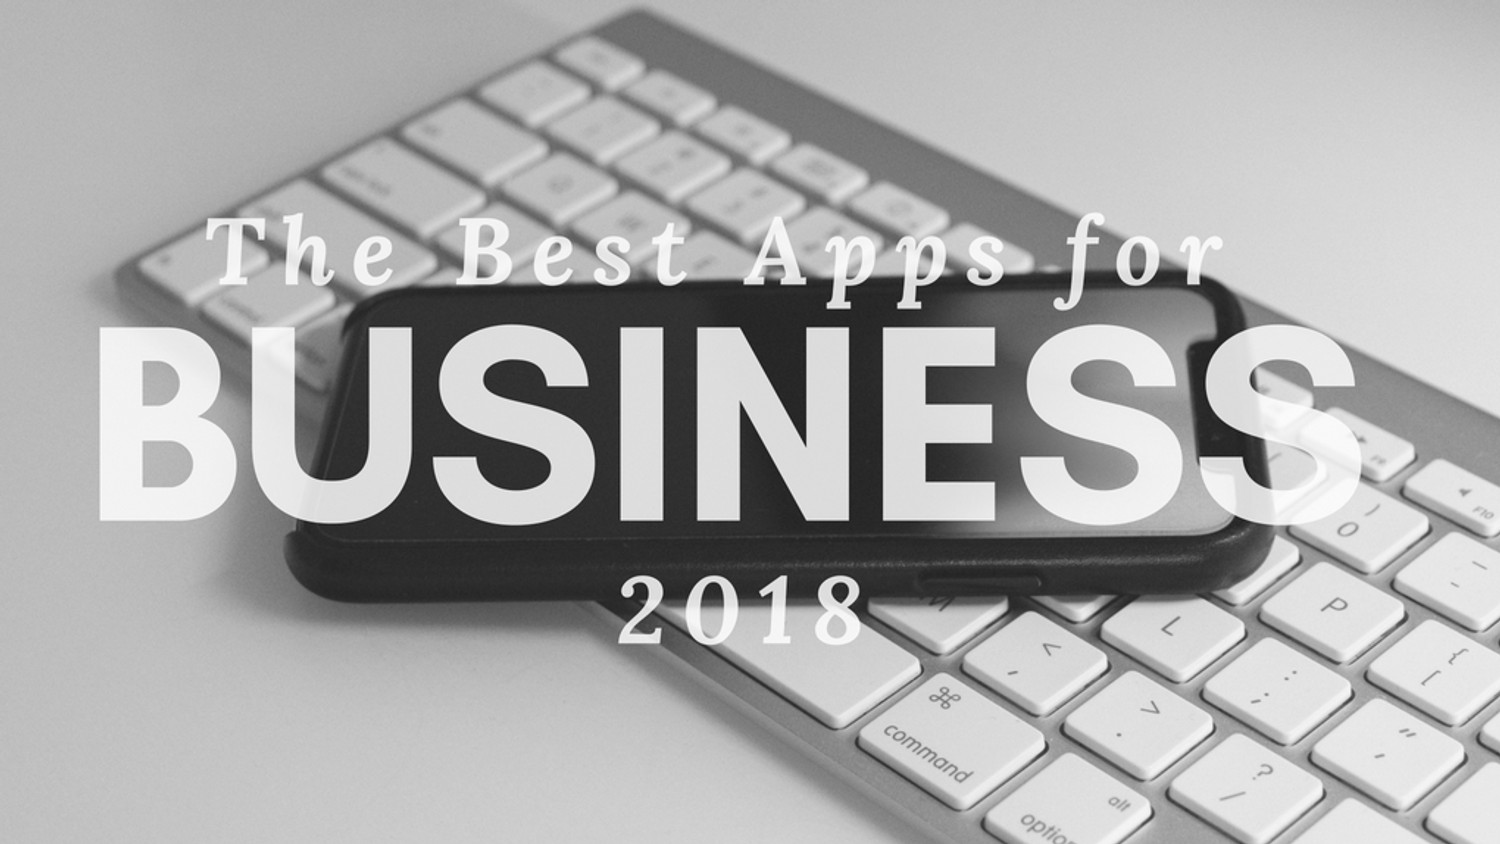 ​The Best Apps for Business in 2018